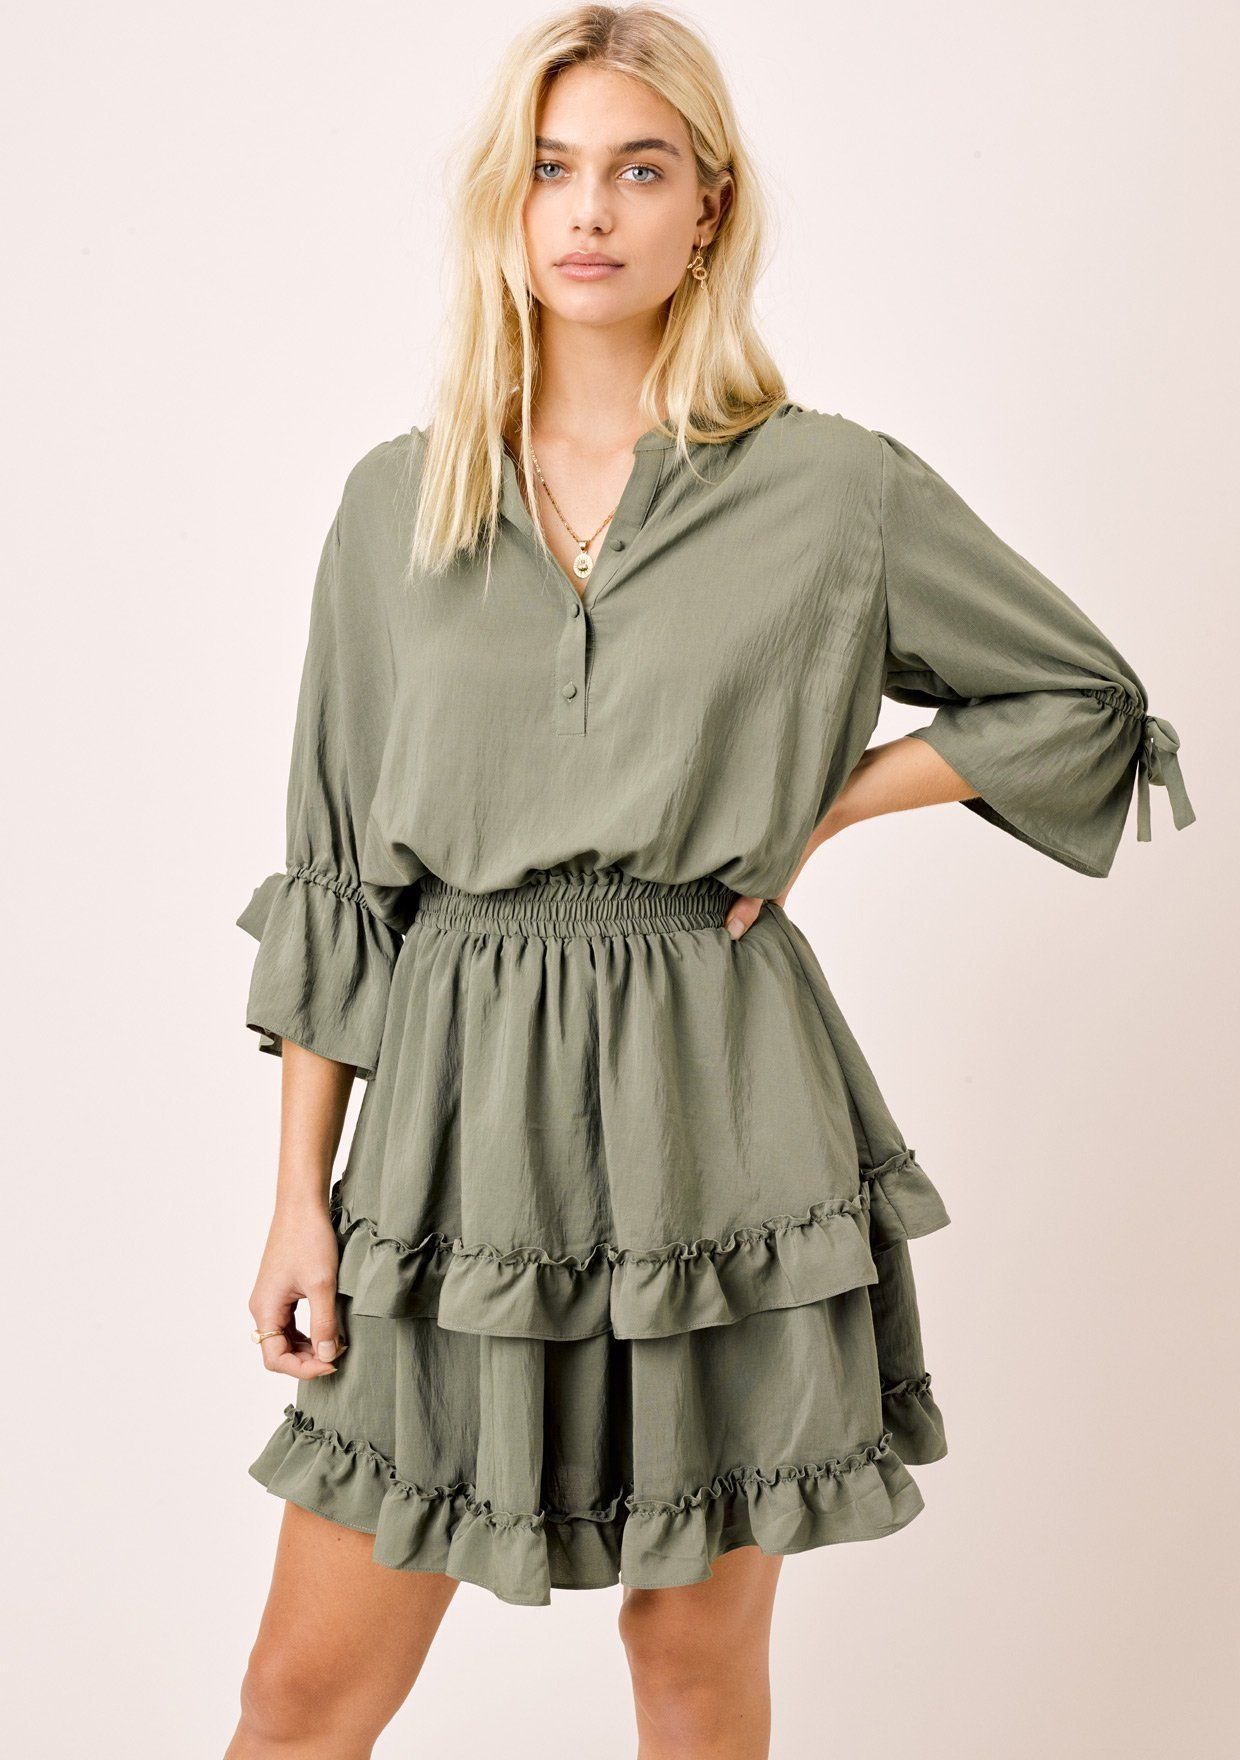 Zemia Tiered Mini Dress